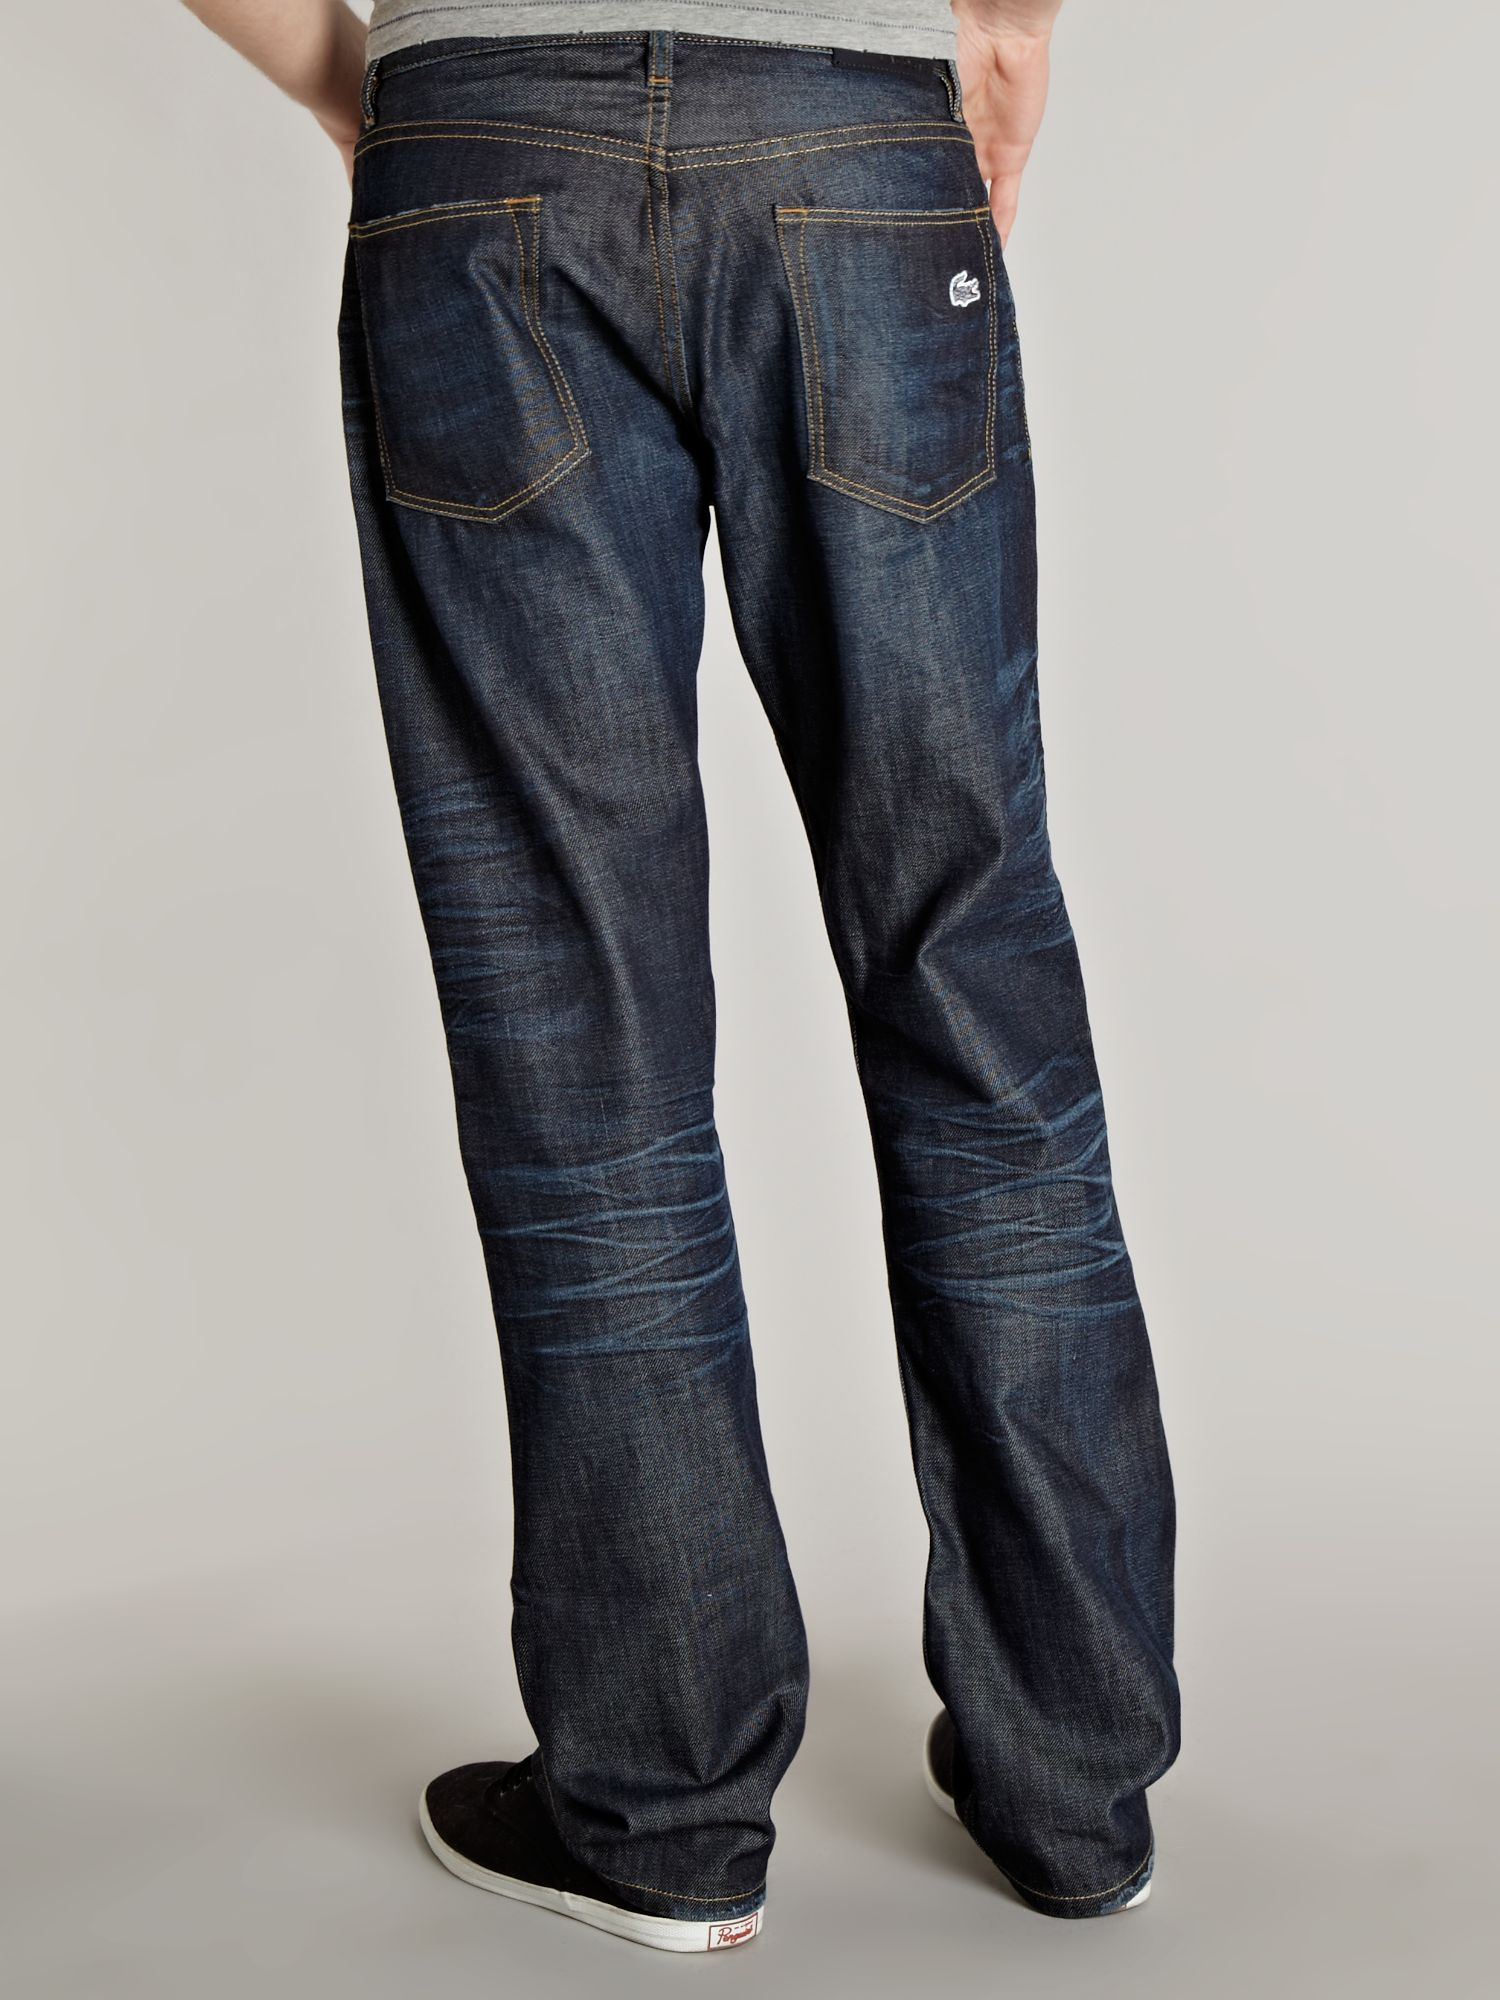 Lacoste Pocket Logo Straight Fitted Jeans In Blue For Men